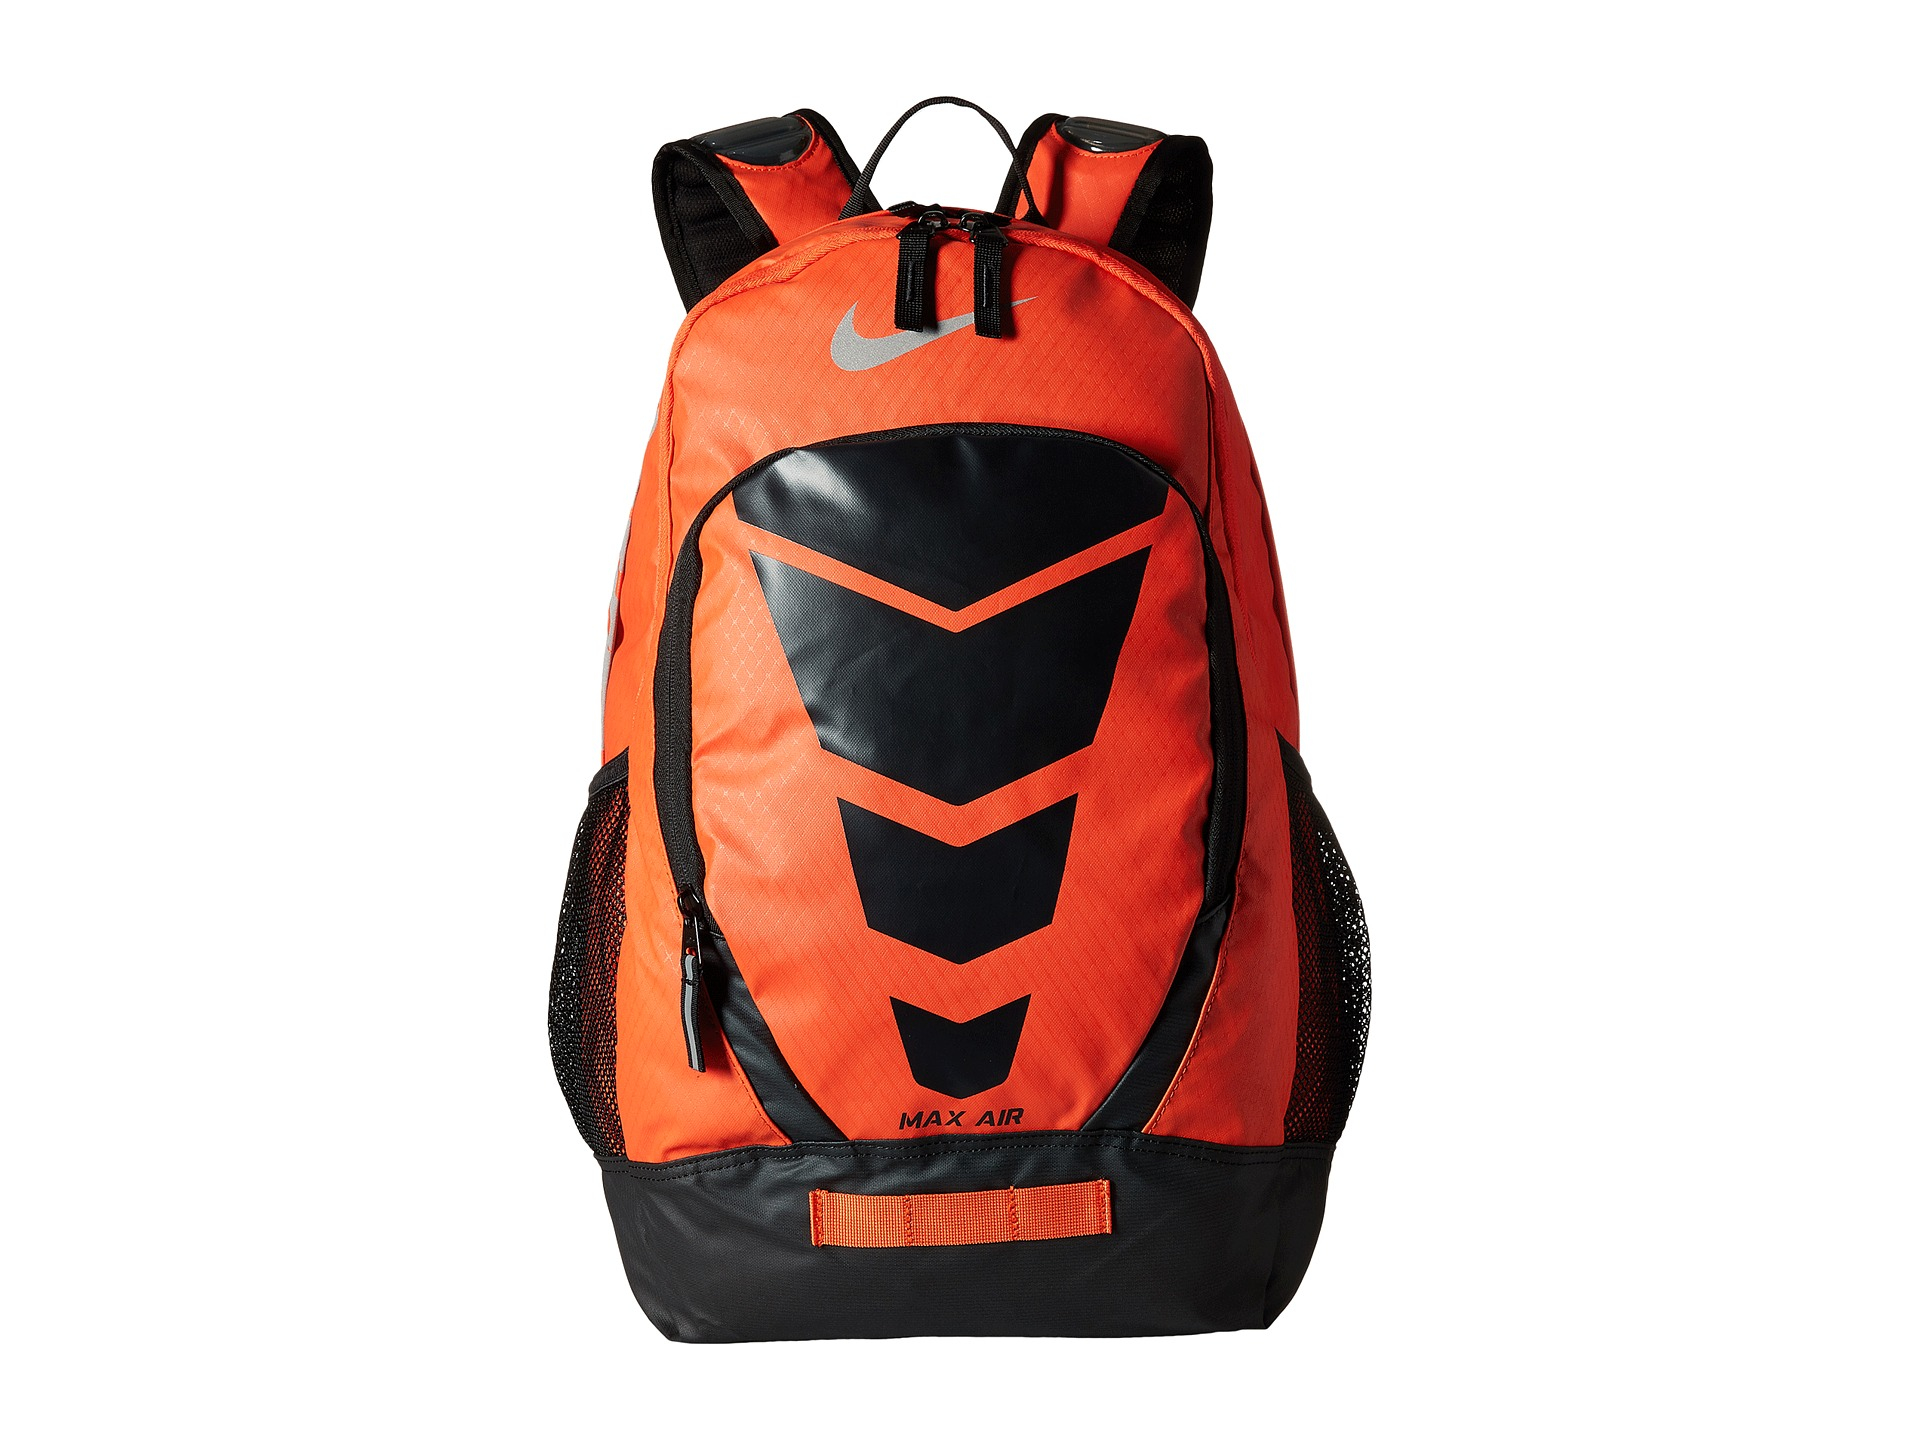 6a622c5fed Lyst - Nike Max Air Vapor Backpack Large in Orange